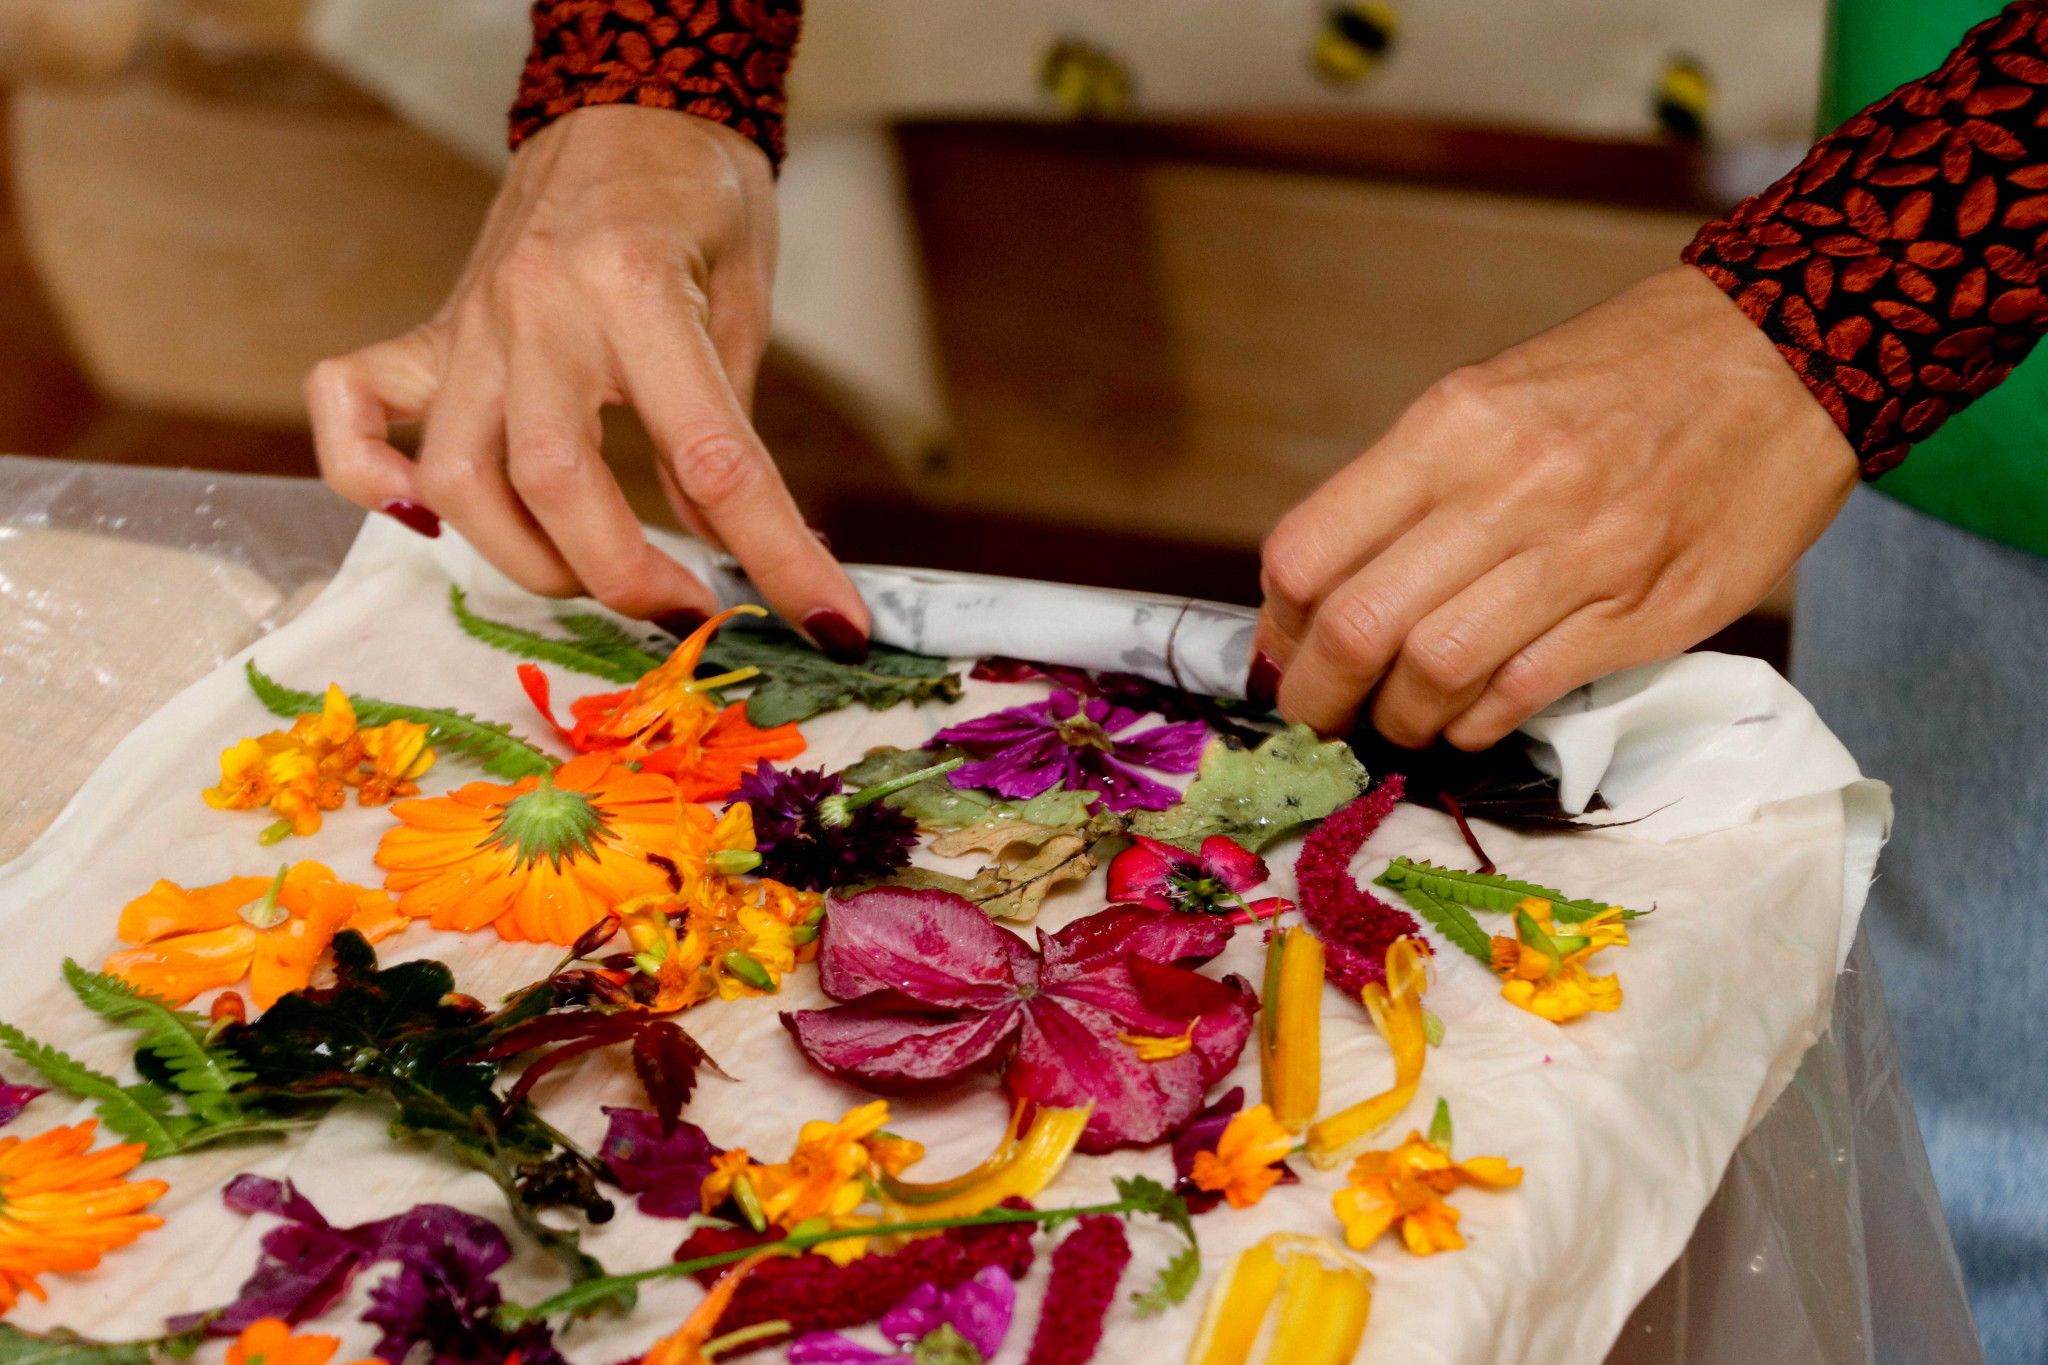 Natural dye workshop using flowers from the Dumfries House gardens